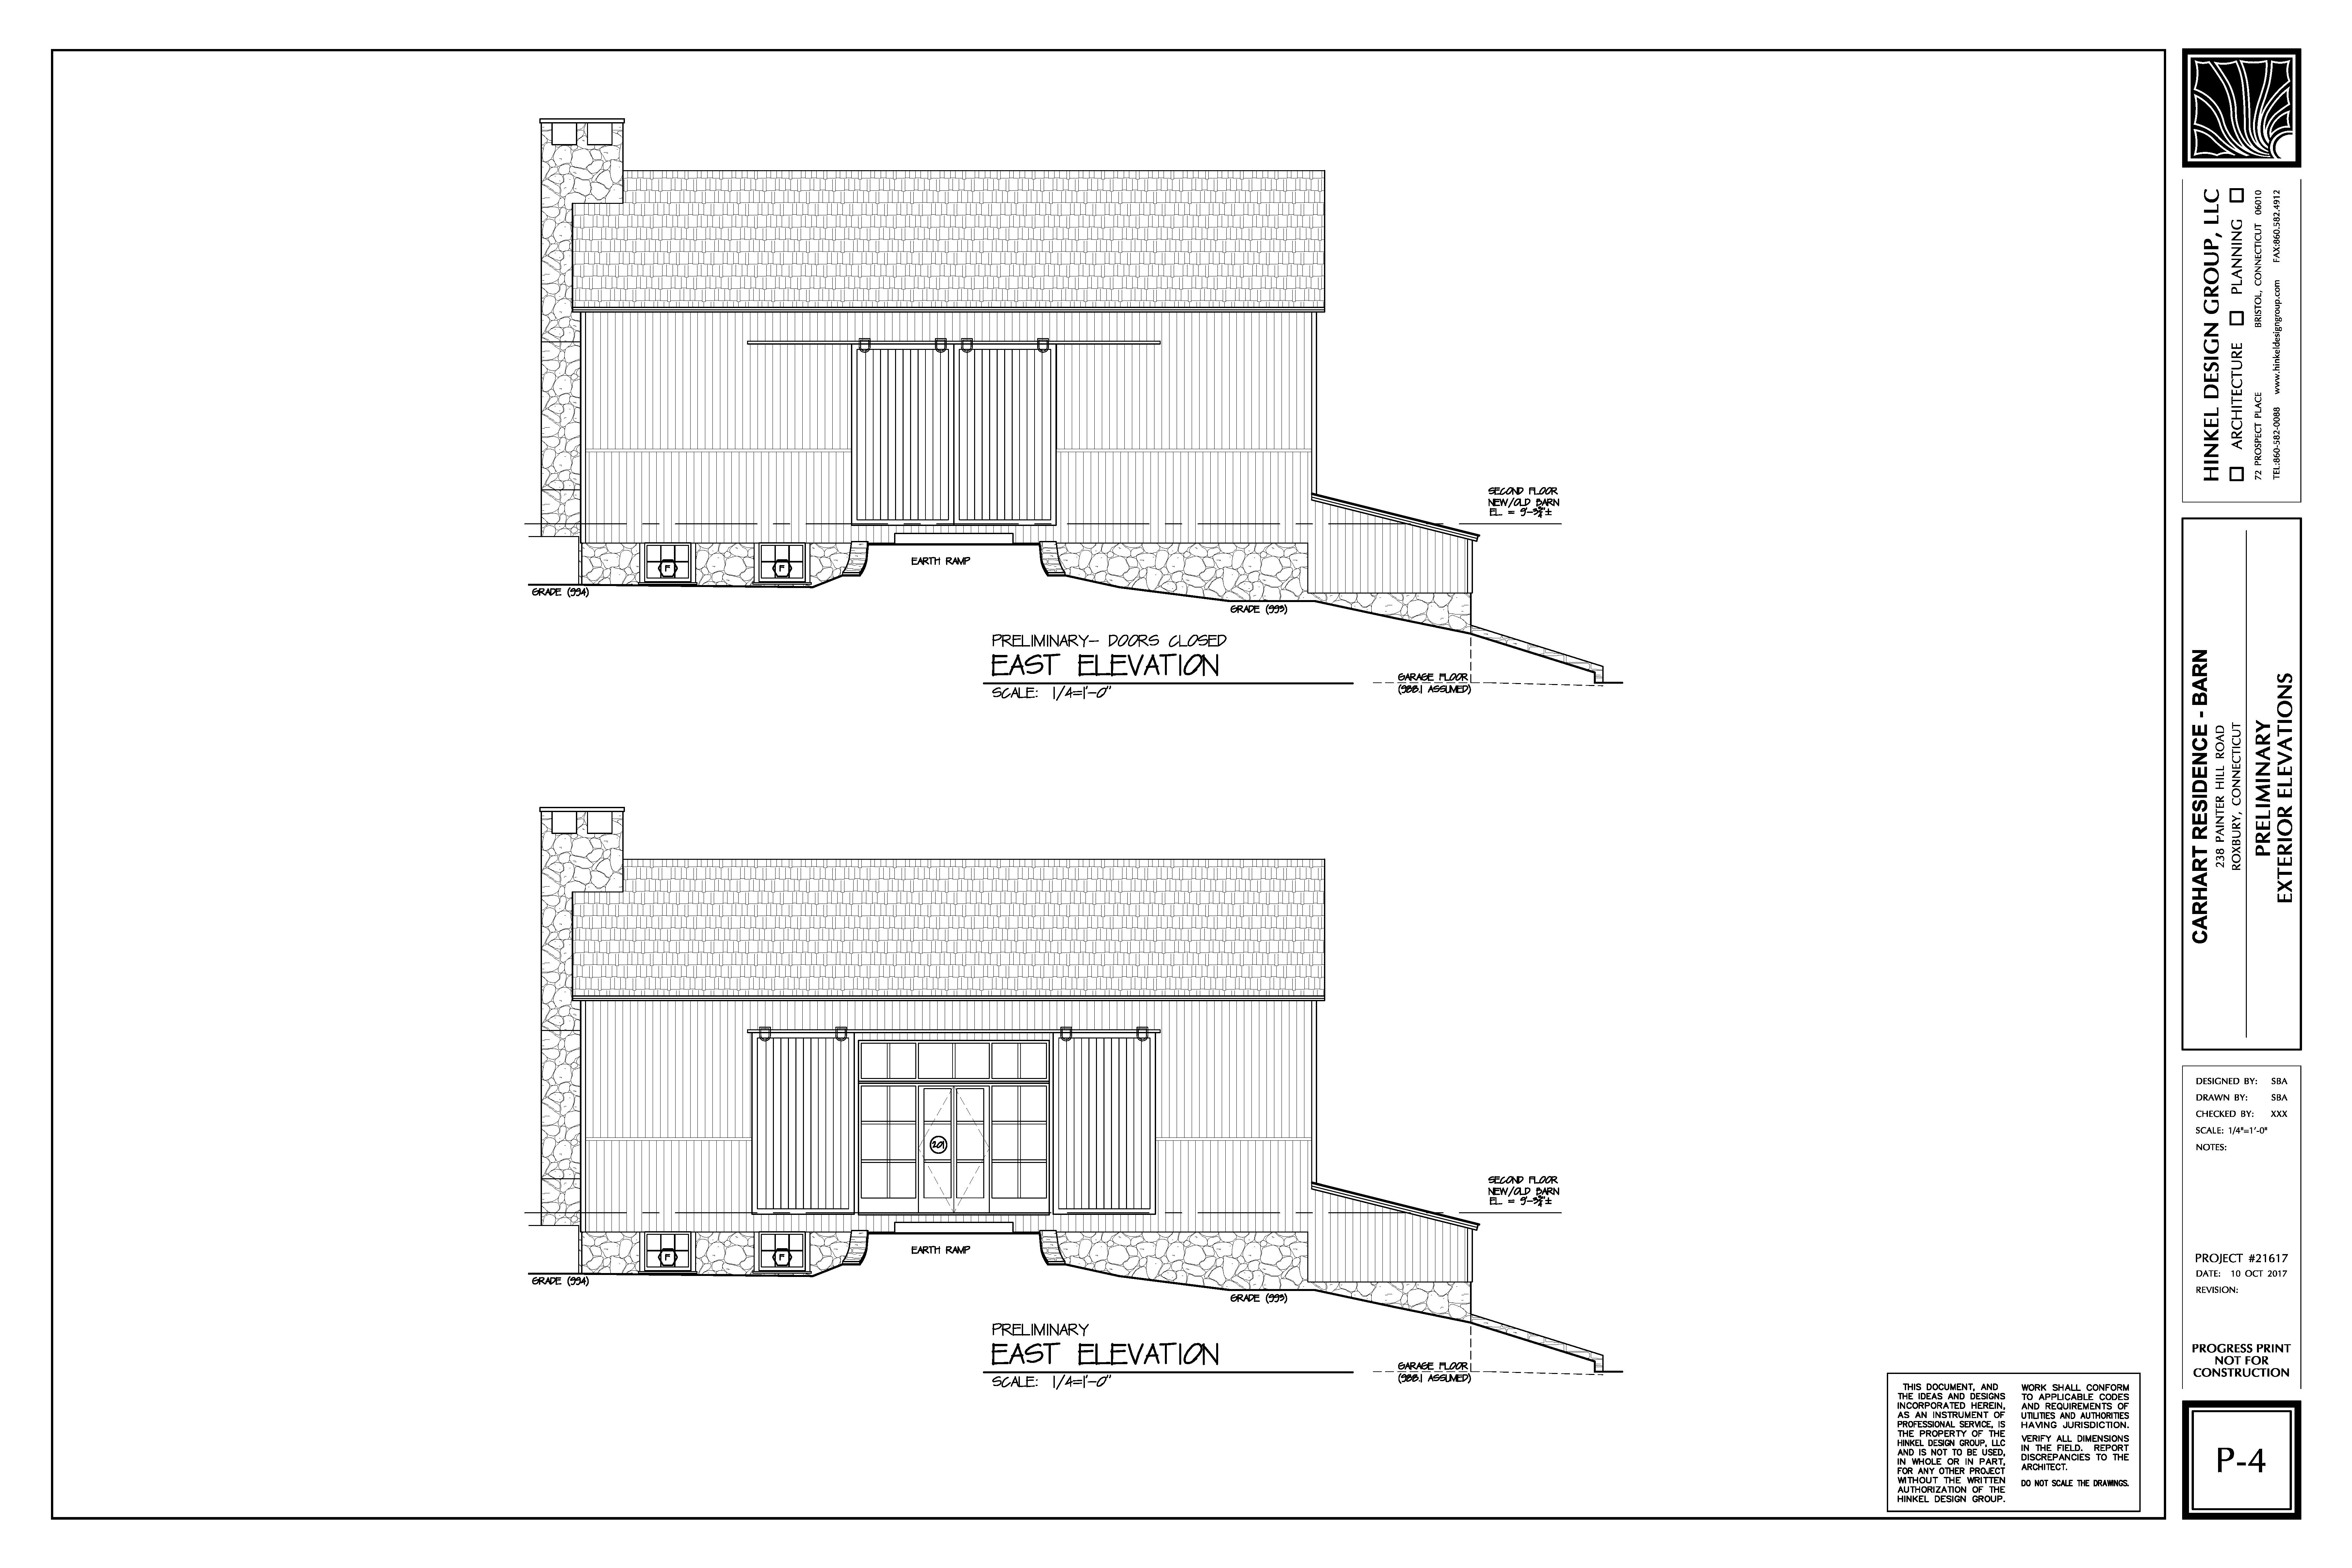 Proposed Barn Remodel: Elevation East